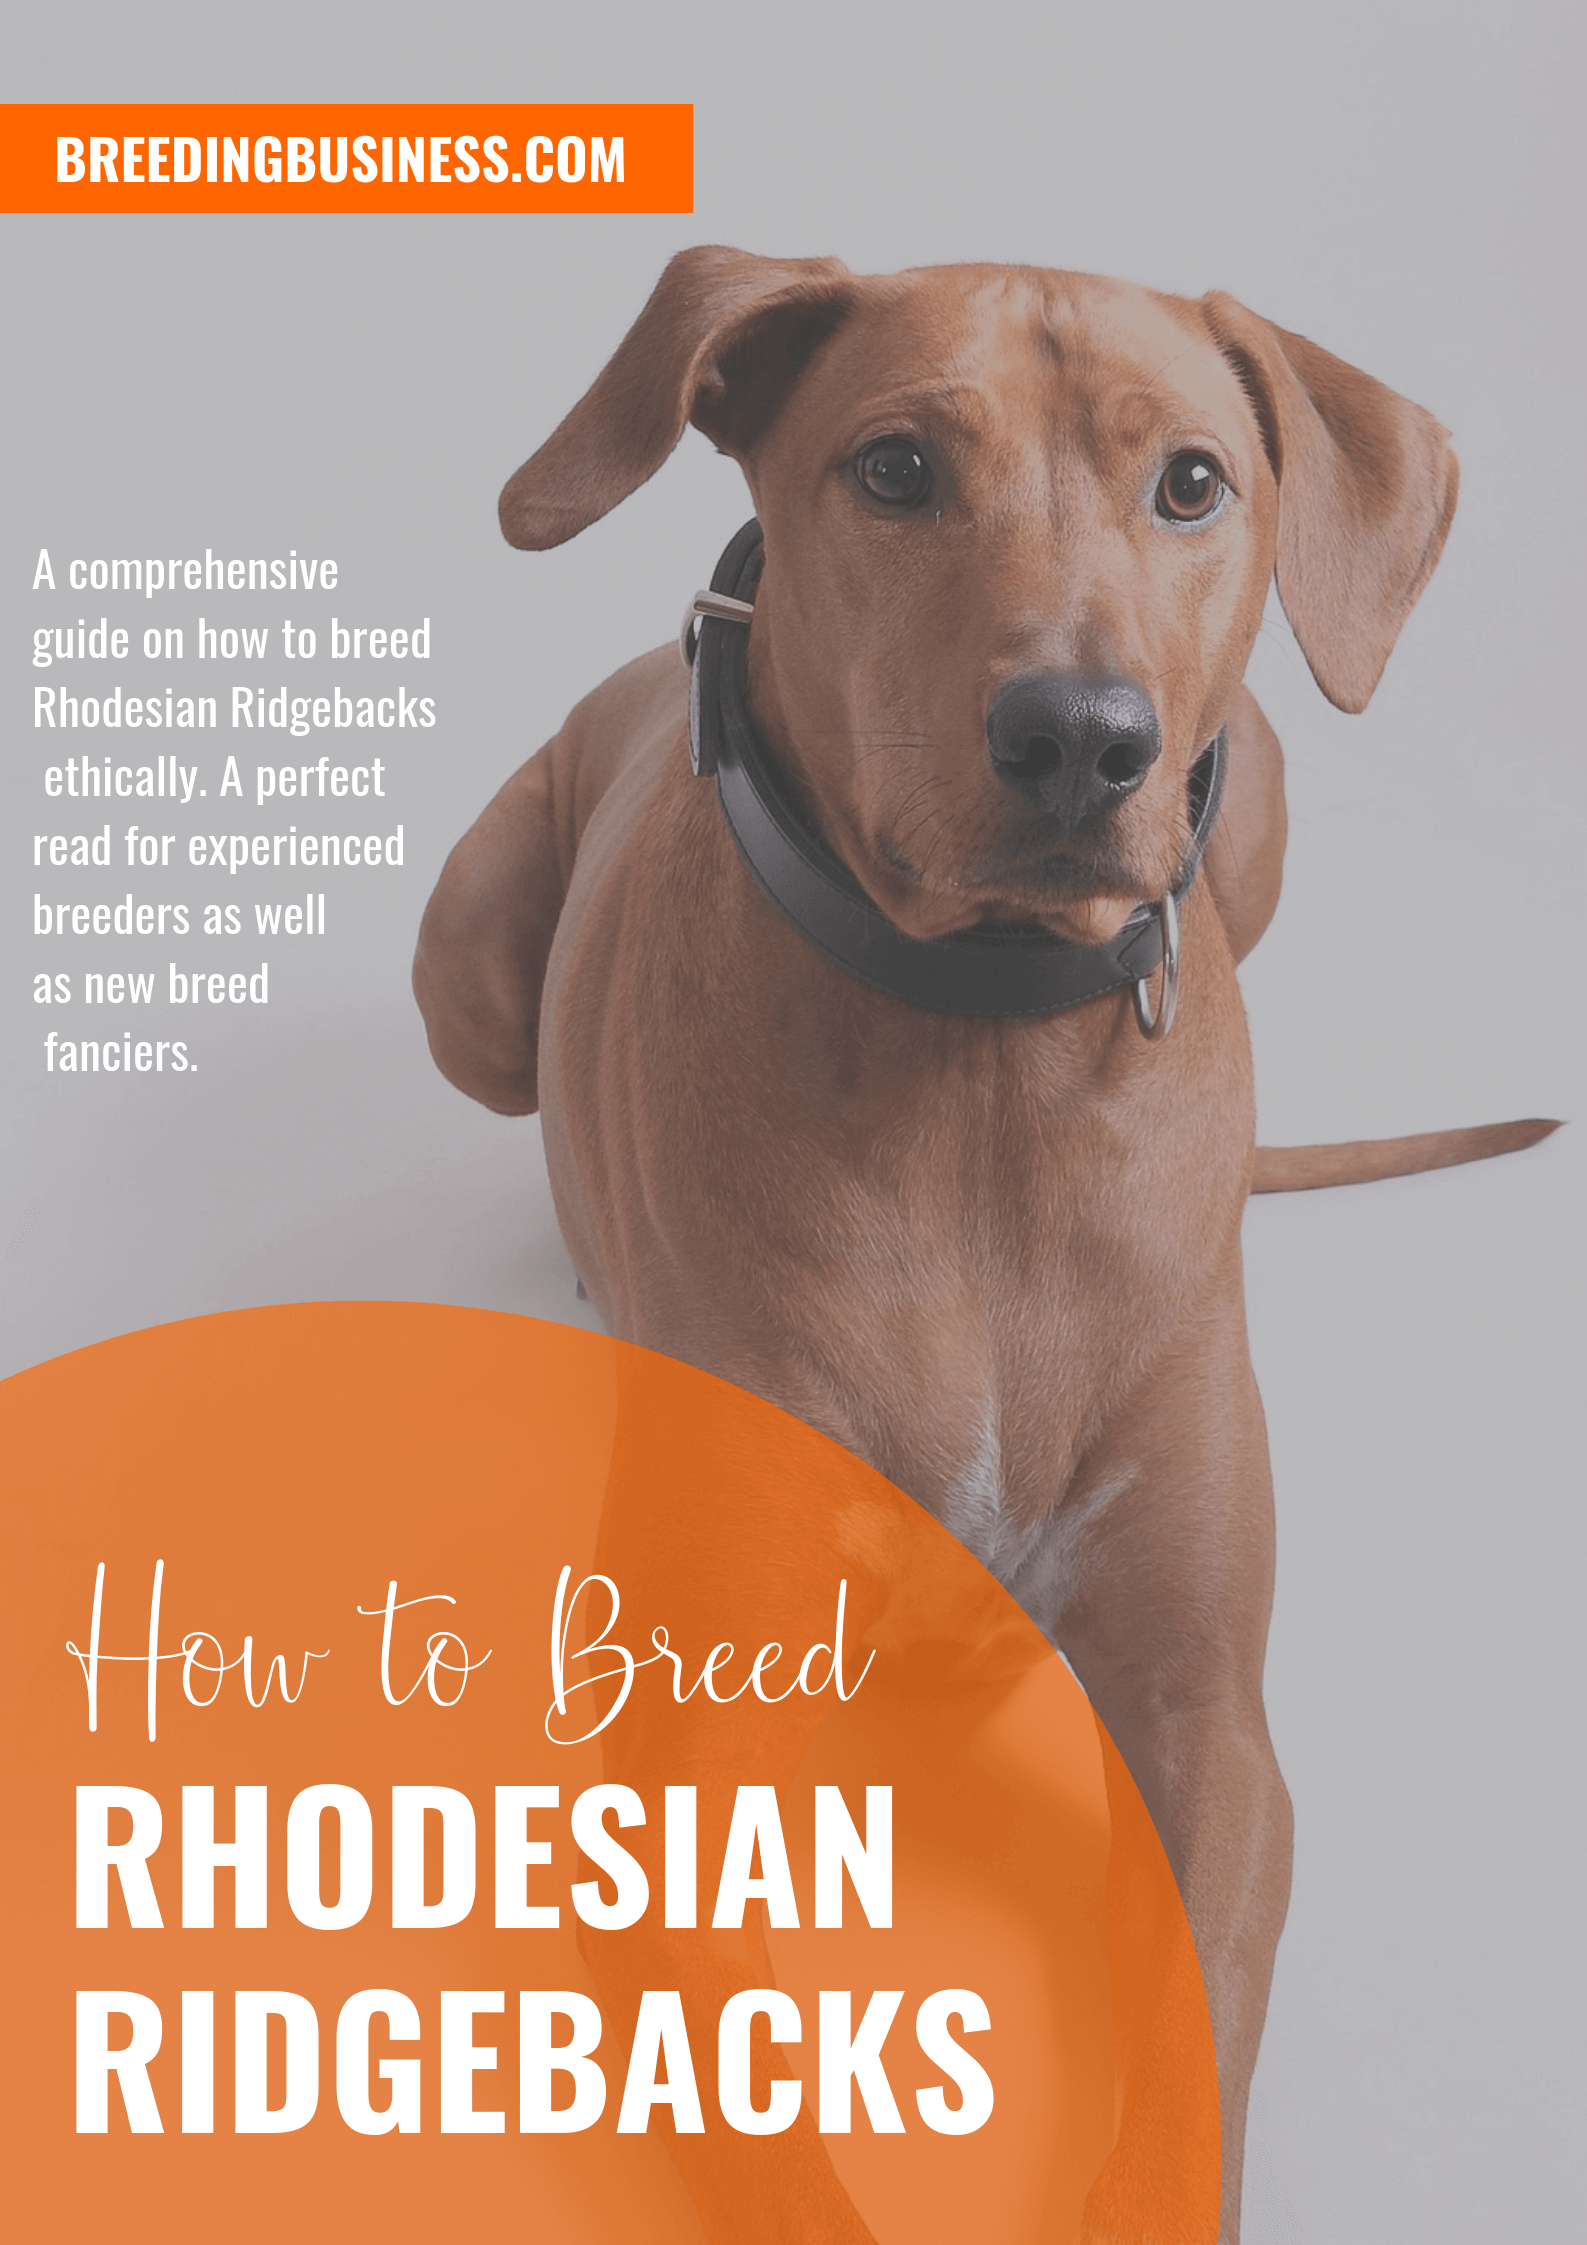 breeding Rhodesian Ridgebacks